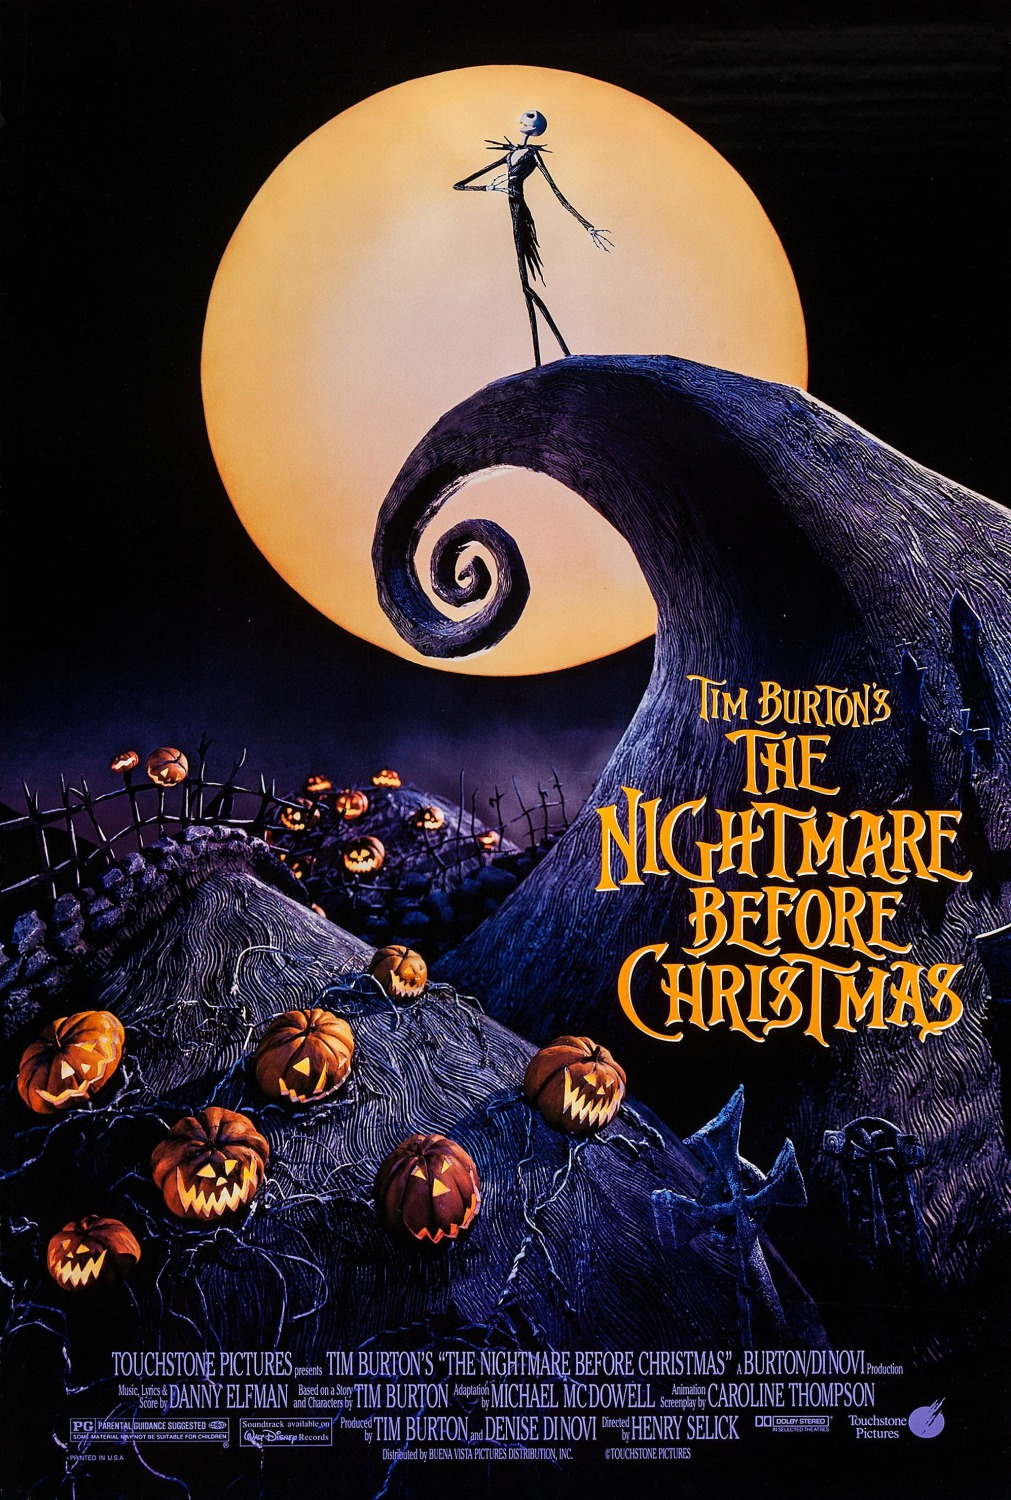 THE NIGHTMARE BEFORE CHRISTMAS - Sing Along